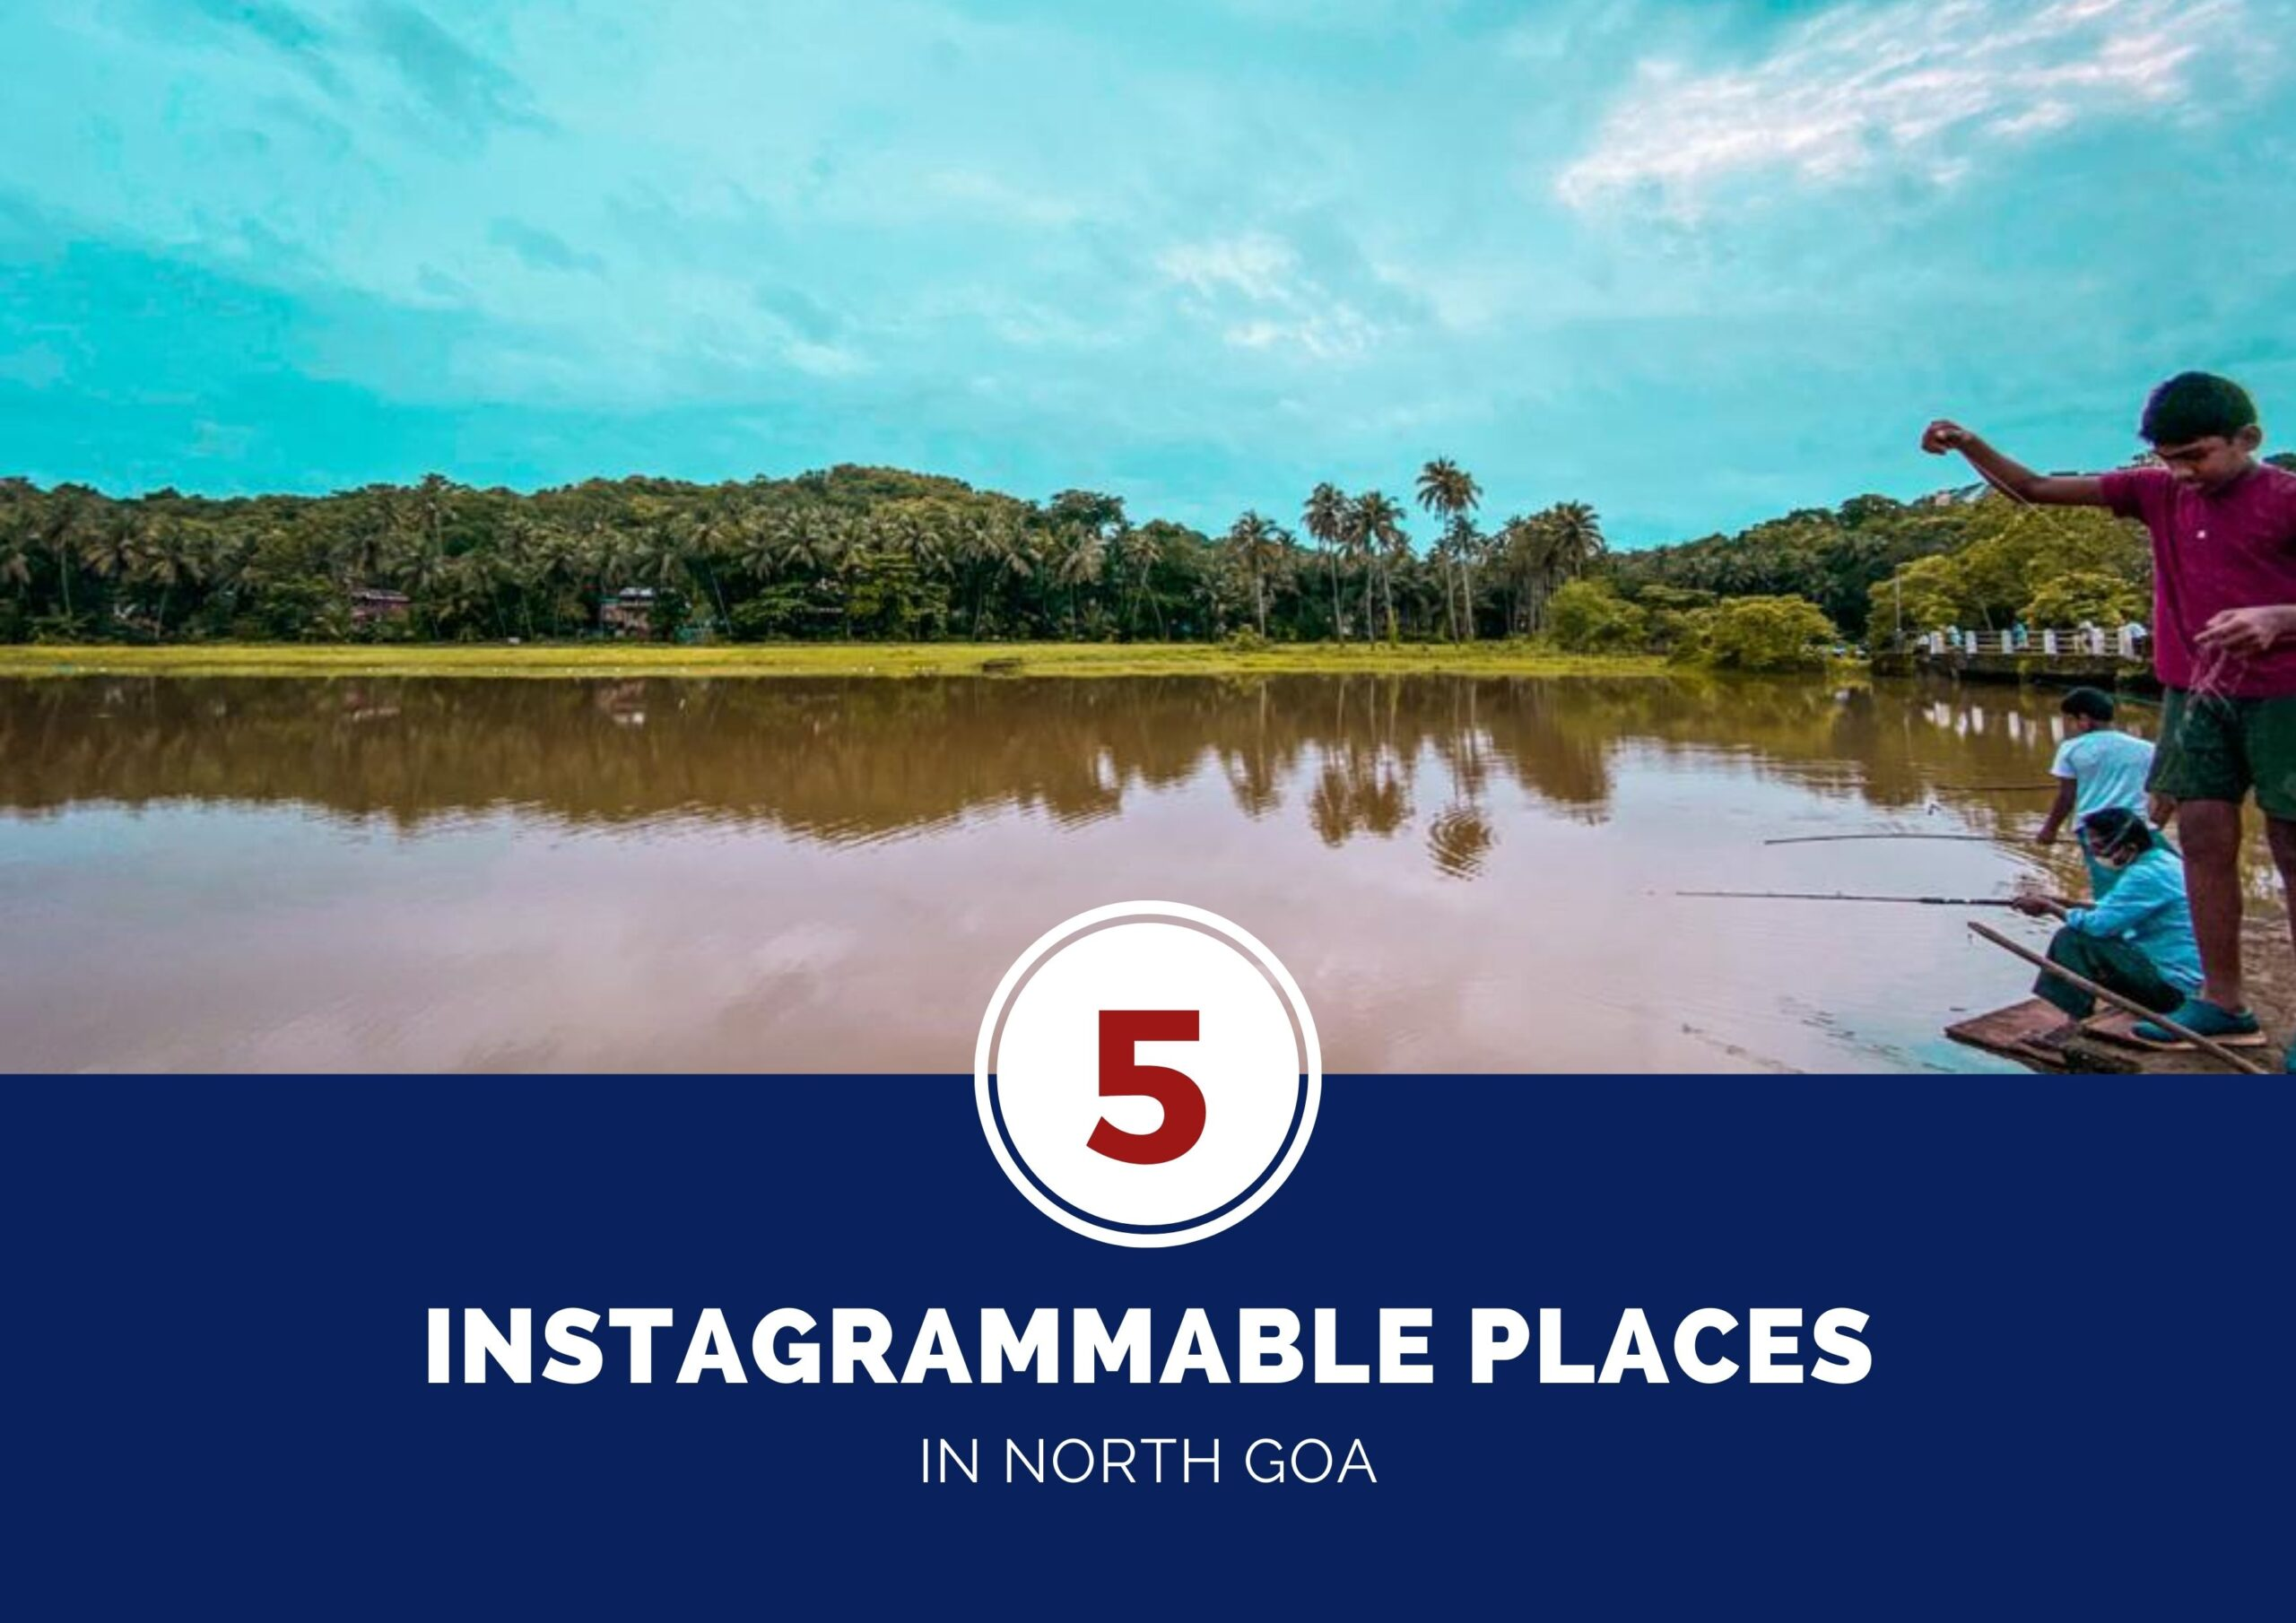 5 Most instagrammable places in north goa during monsoon